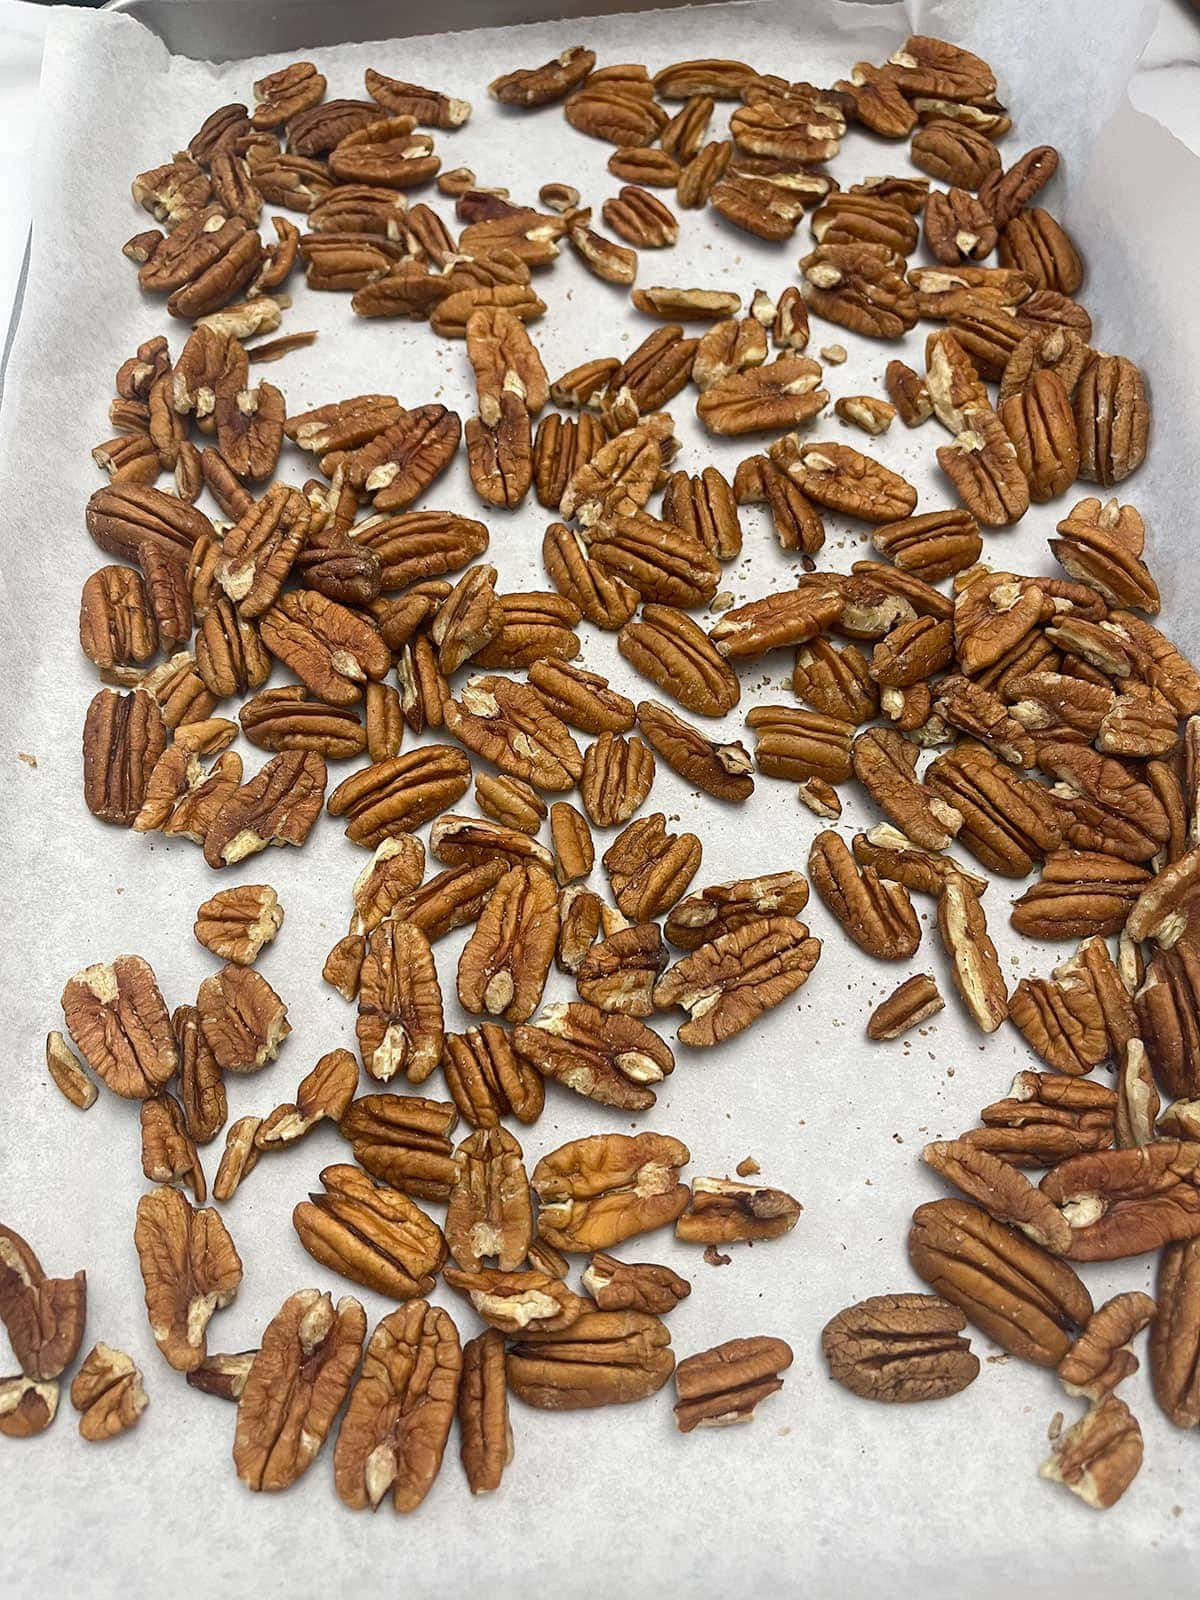 pecans on a baking sheet about to get toasted